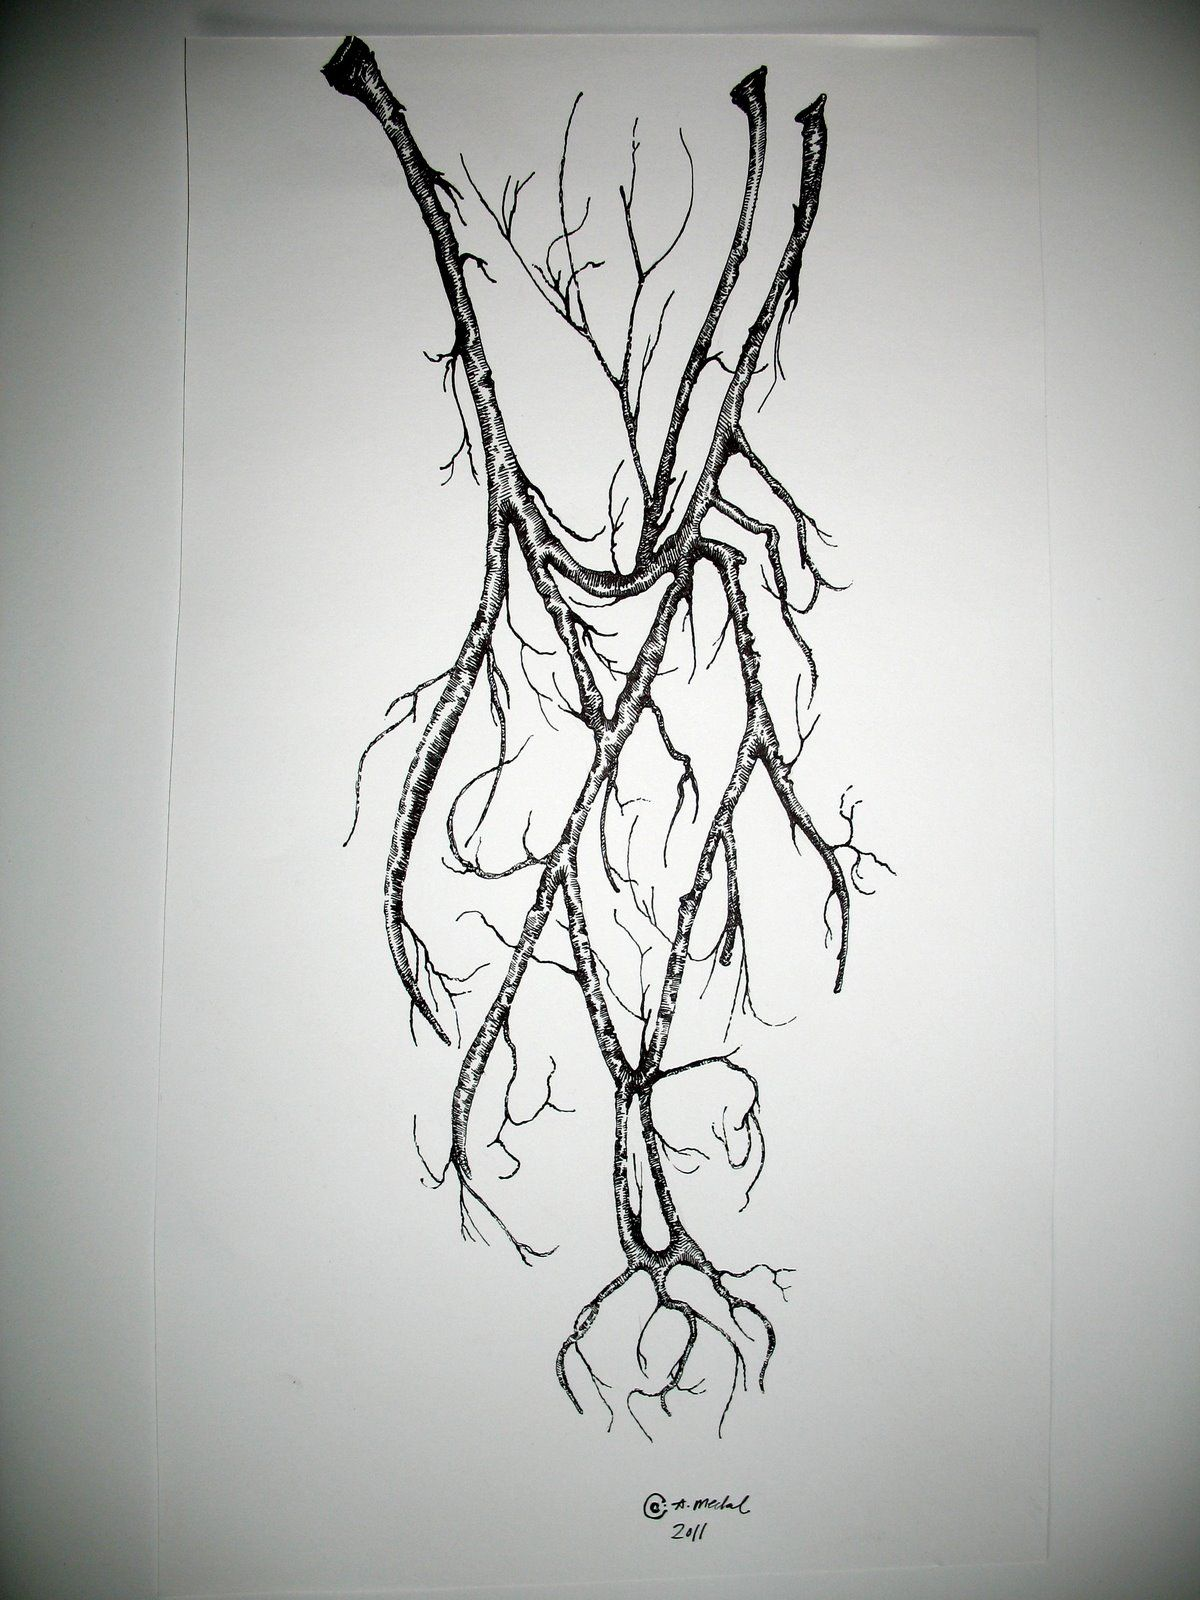 image transparent library Tattoos tattoo designs sketches. Veins drawing tree